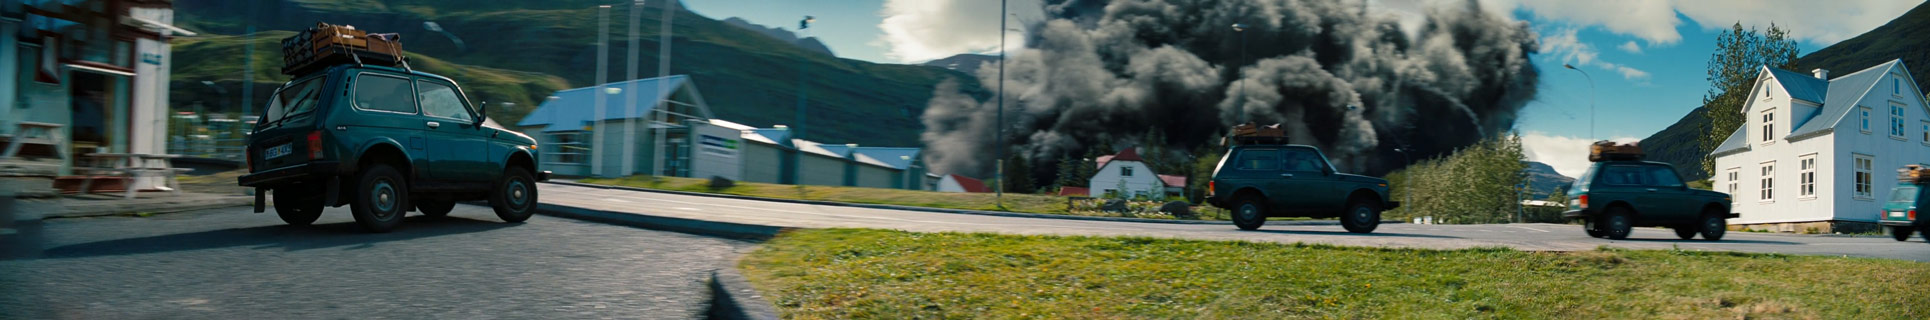 the-secret-life-of-walter-mitty_ben-stiller_eruption_film-panoramas